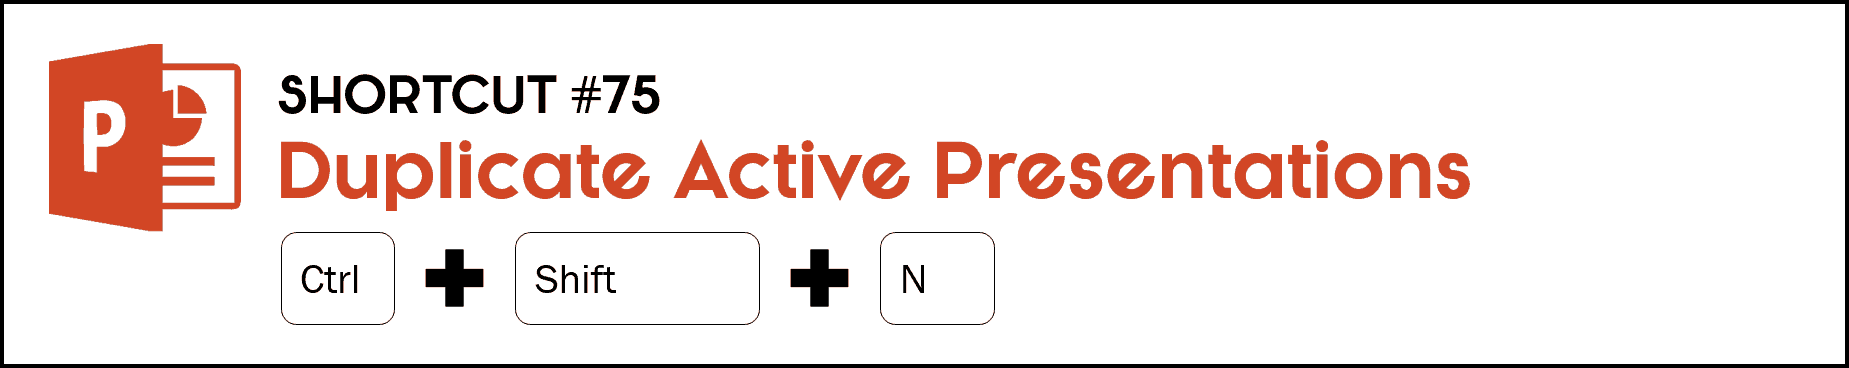 To duplicate an active presentation you are in, hit the Control plus Shift plus N keys on your keyboard